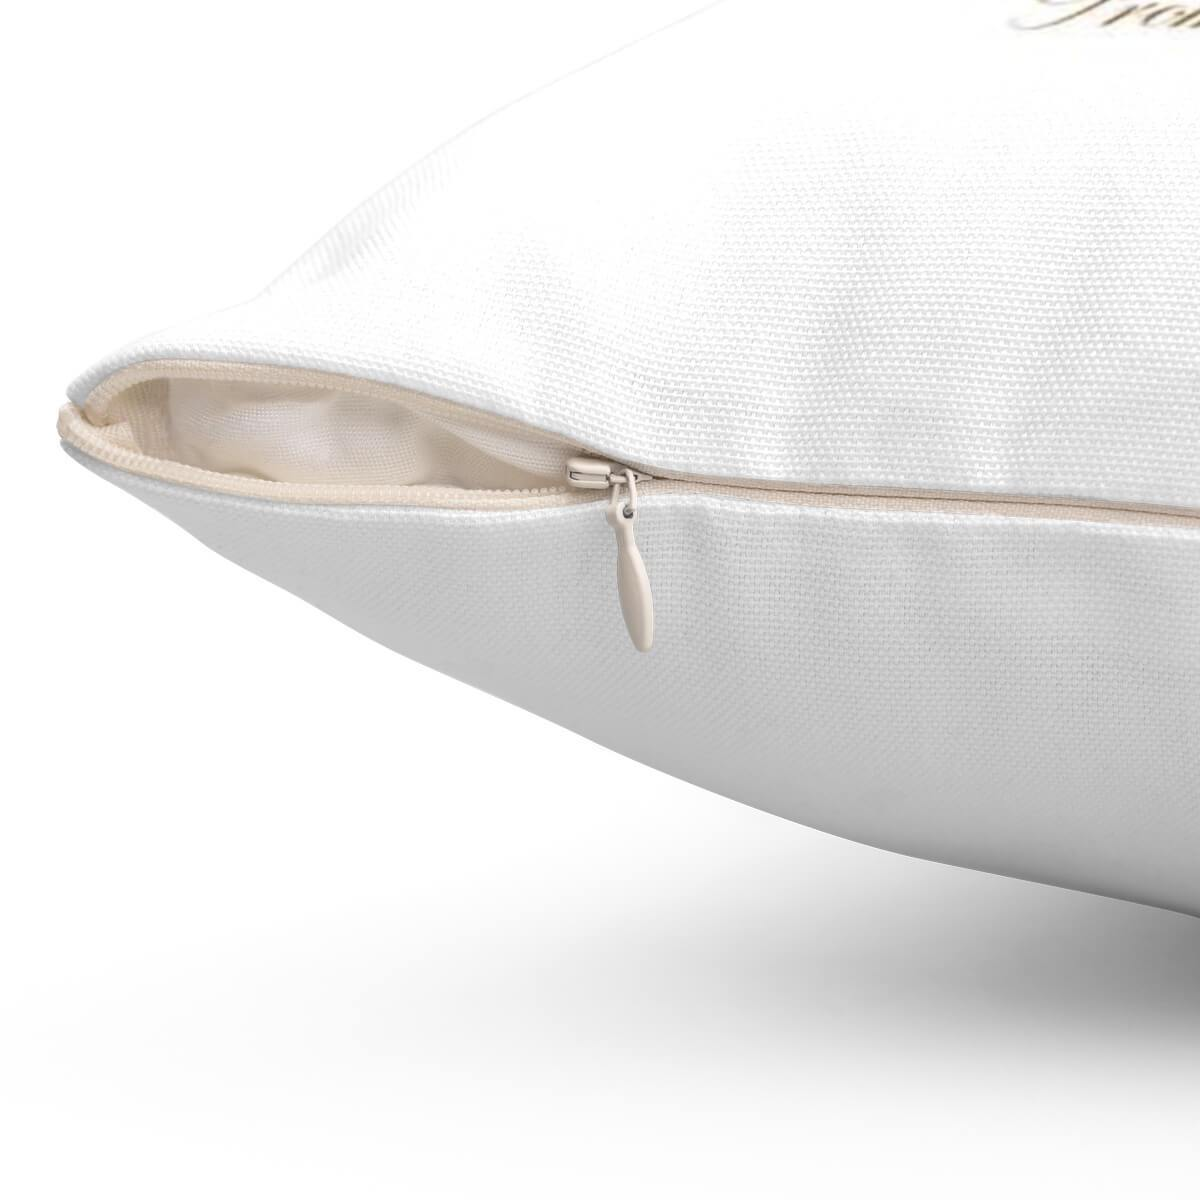 From This Day Forward Pillow - Personalized